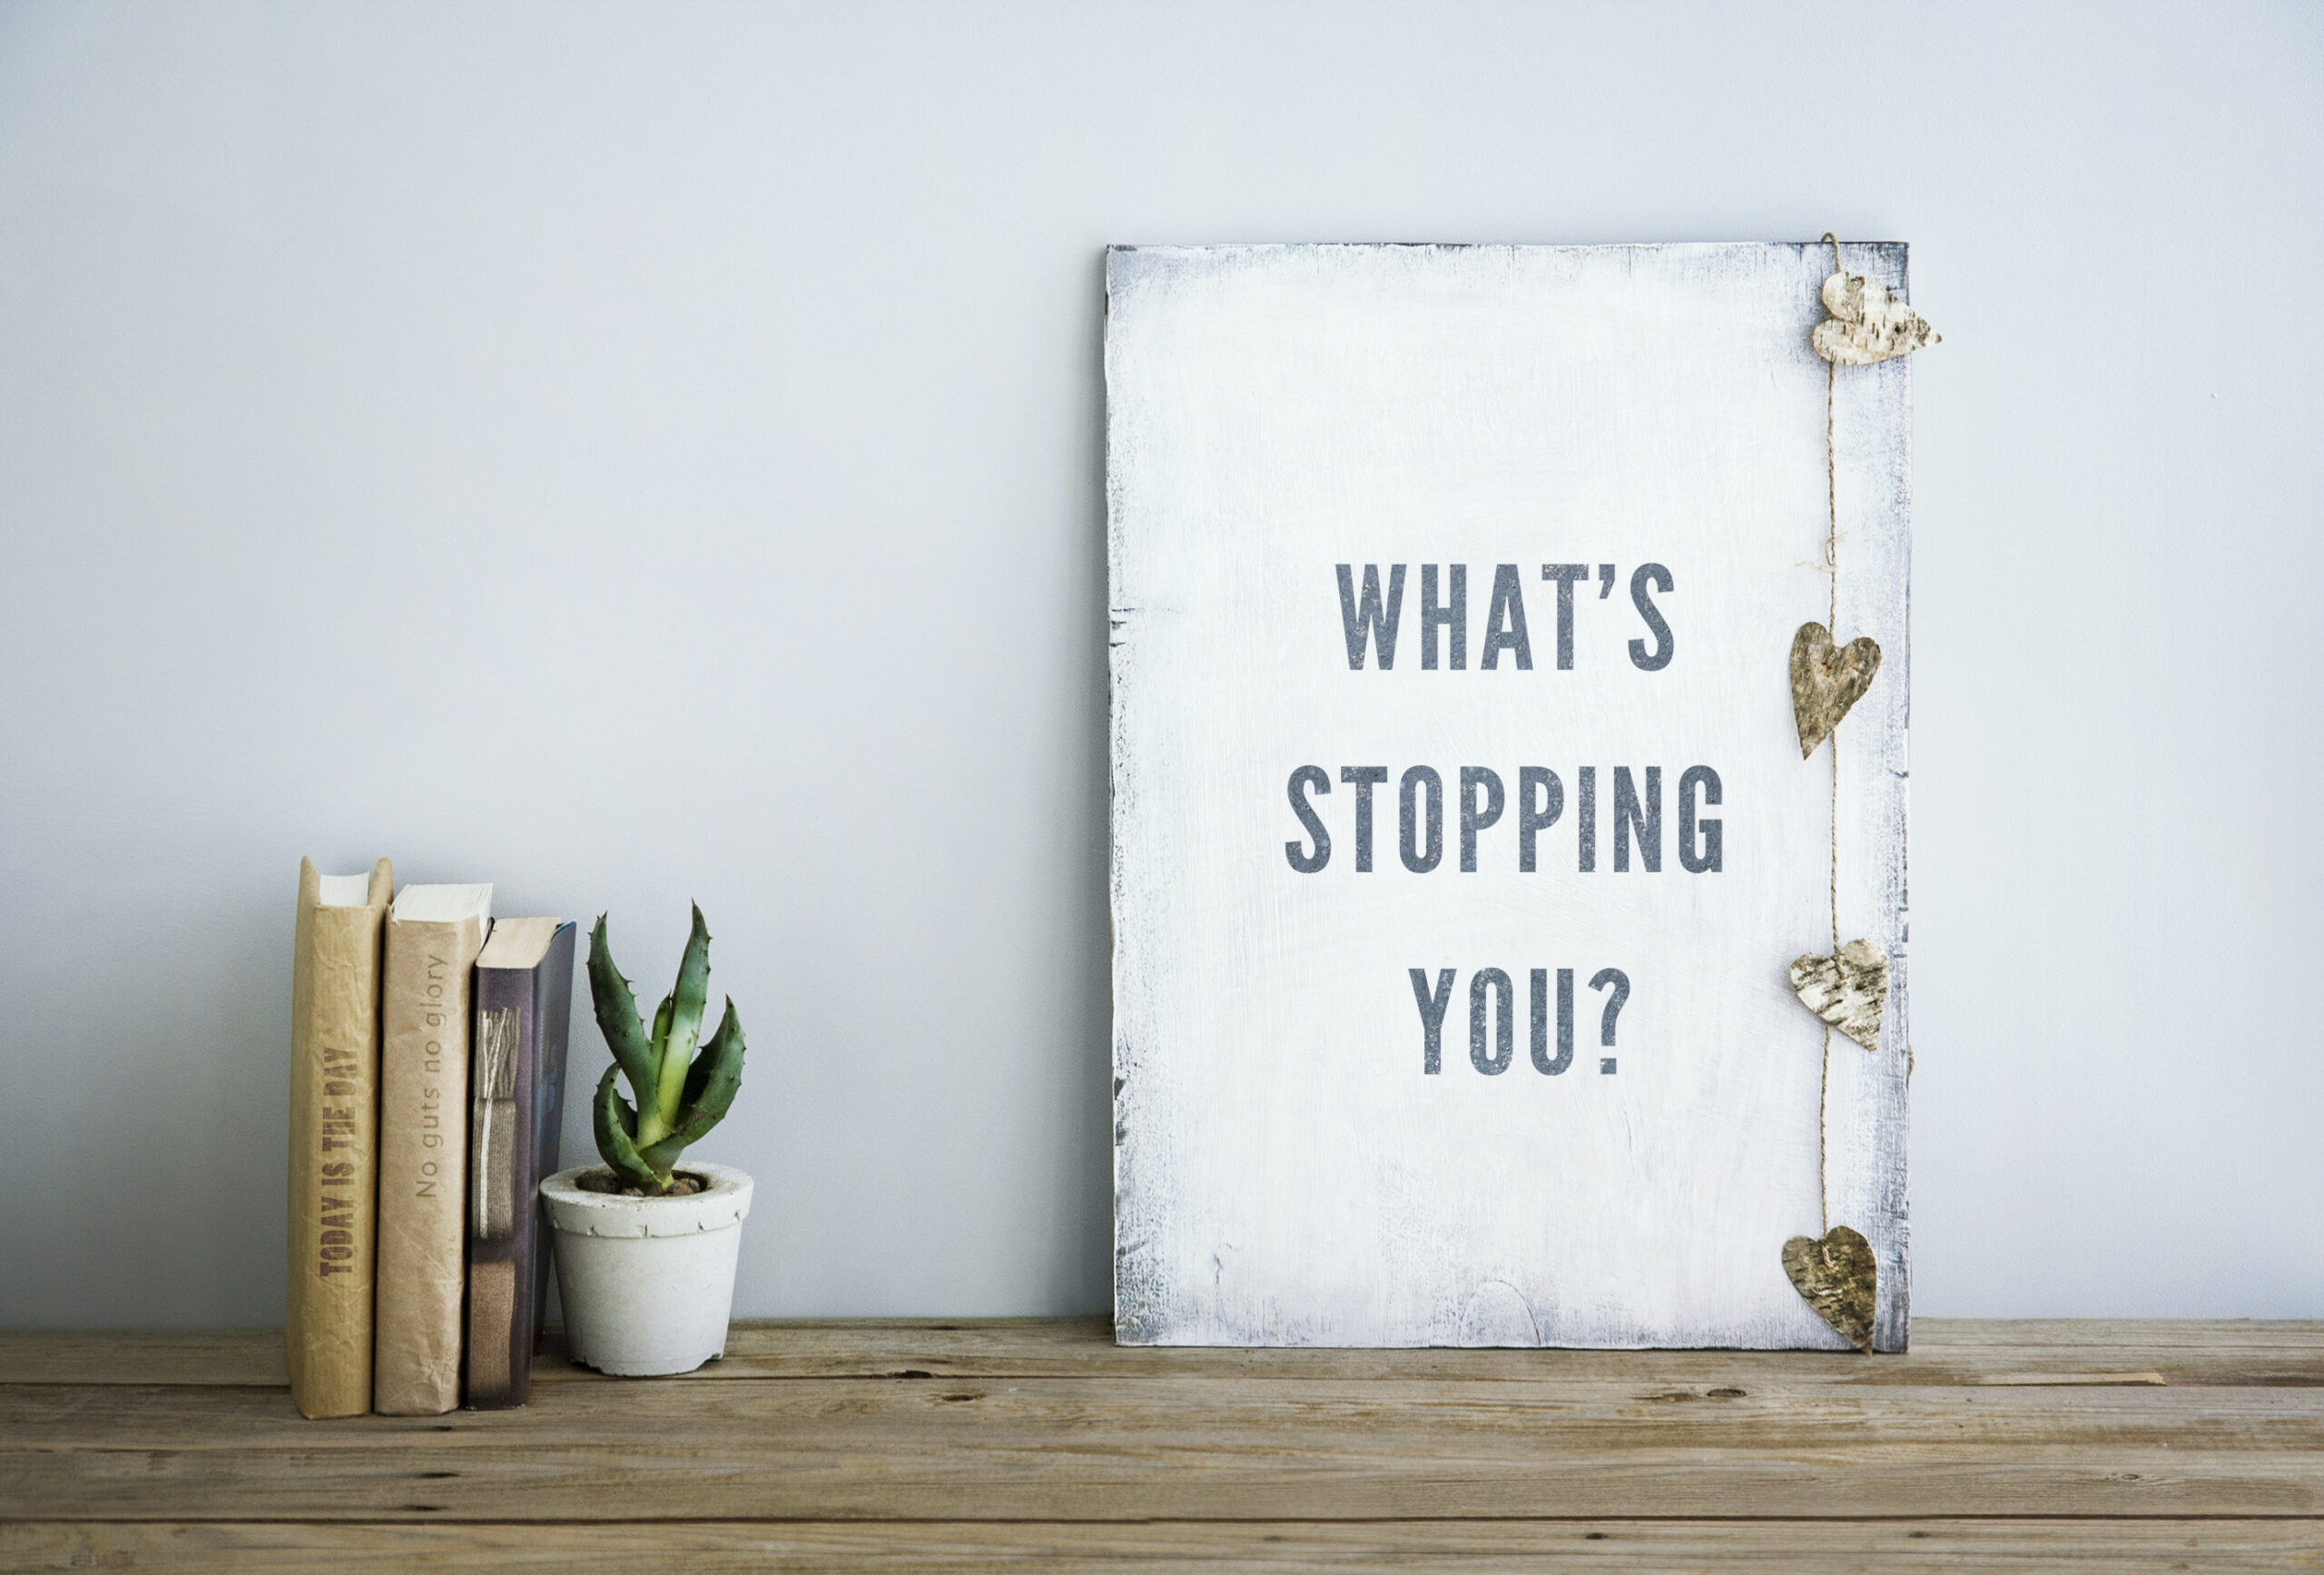 motivational inspirational poster quote WHAT'S STOPPING YOU?